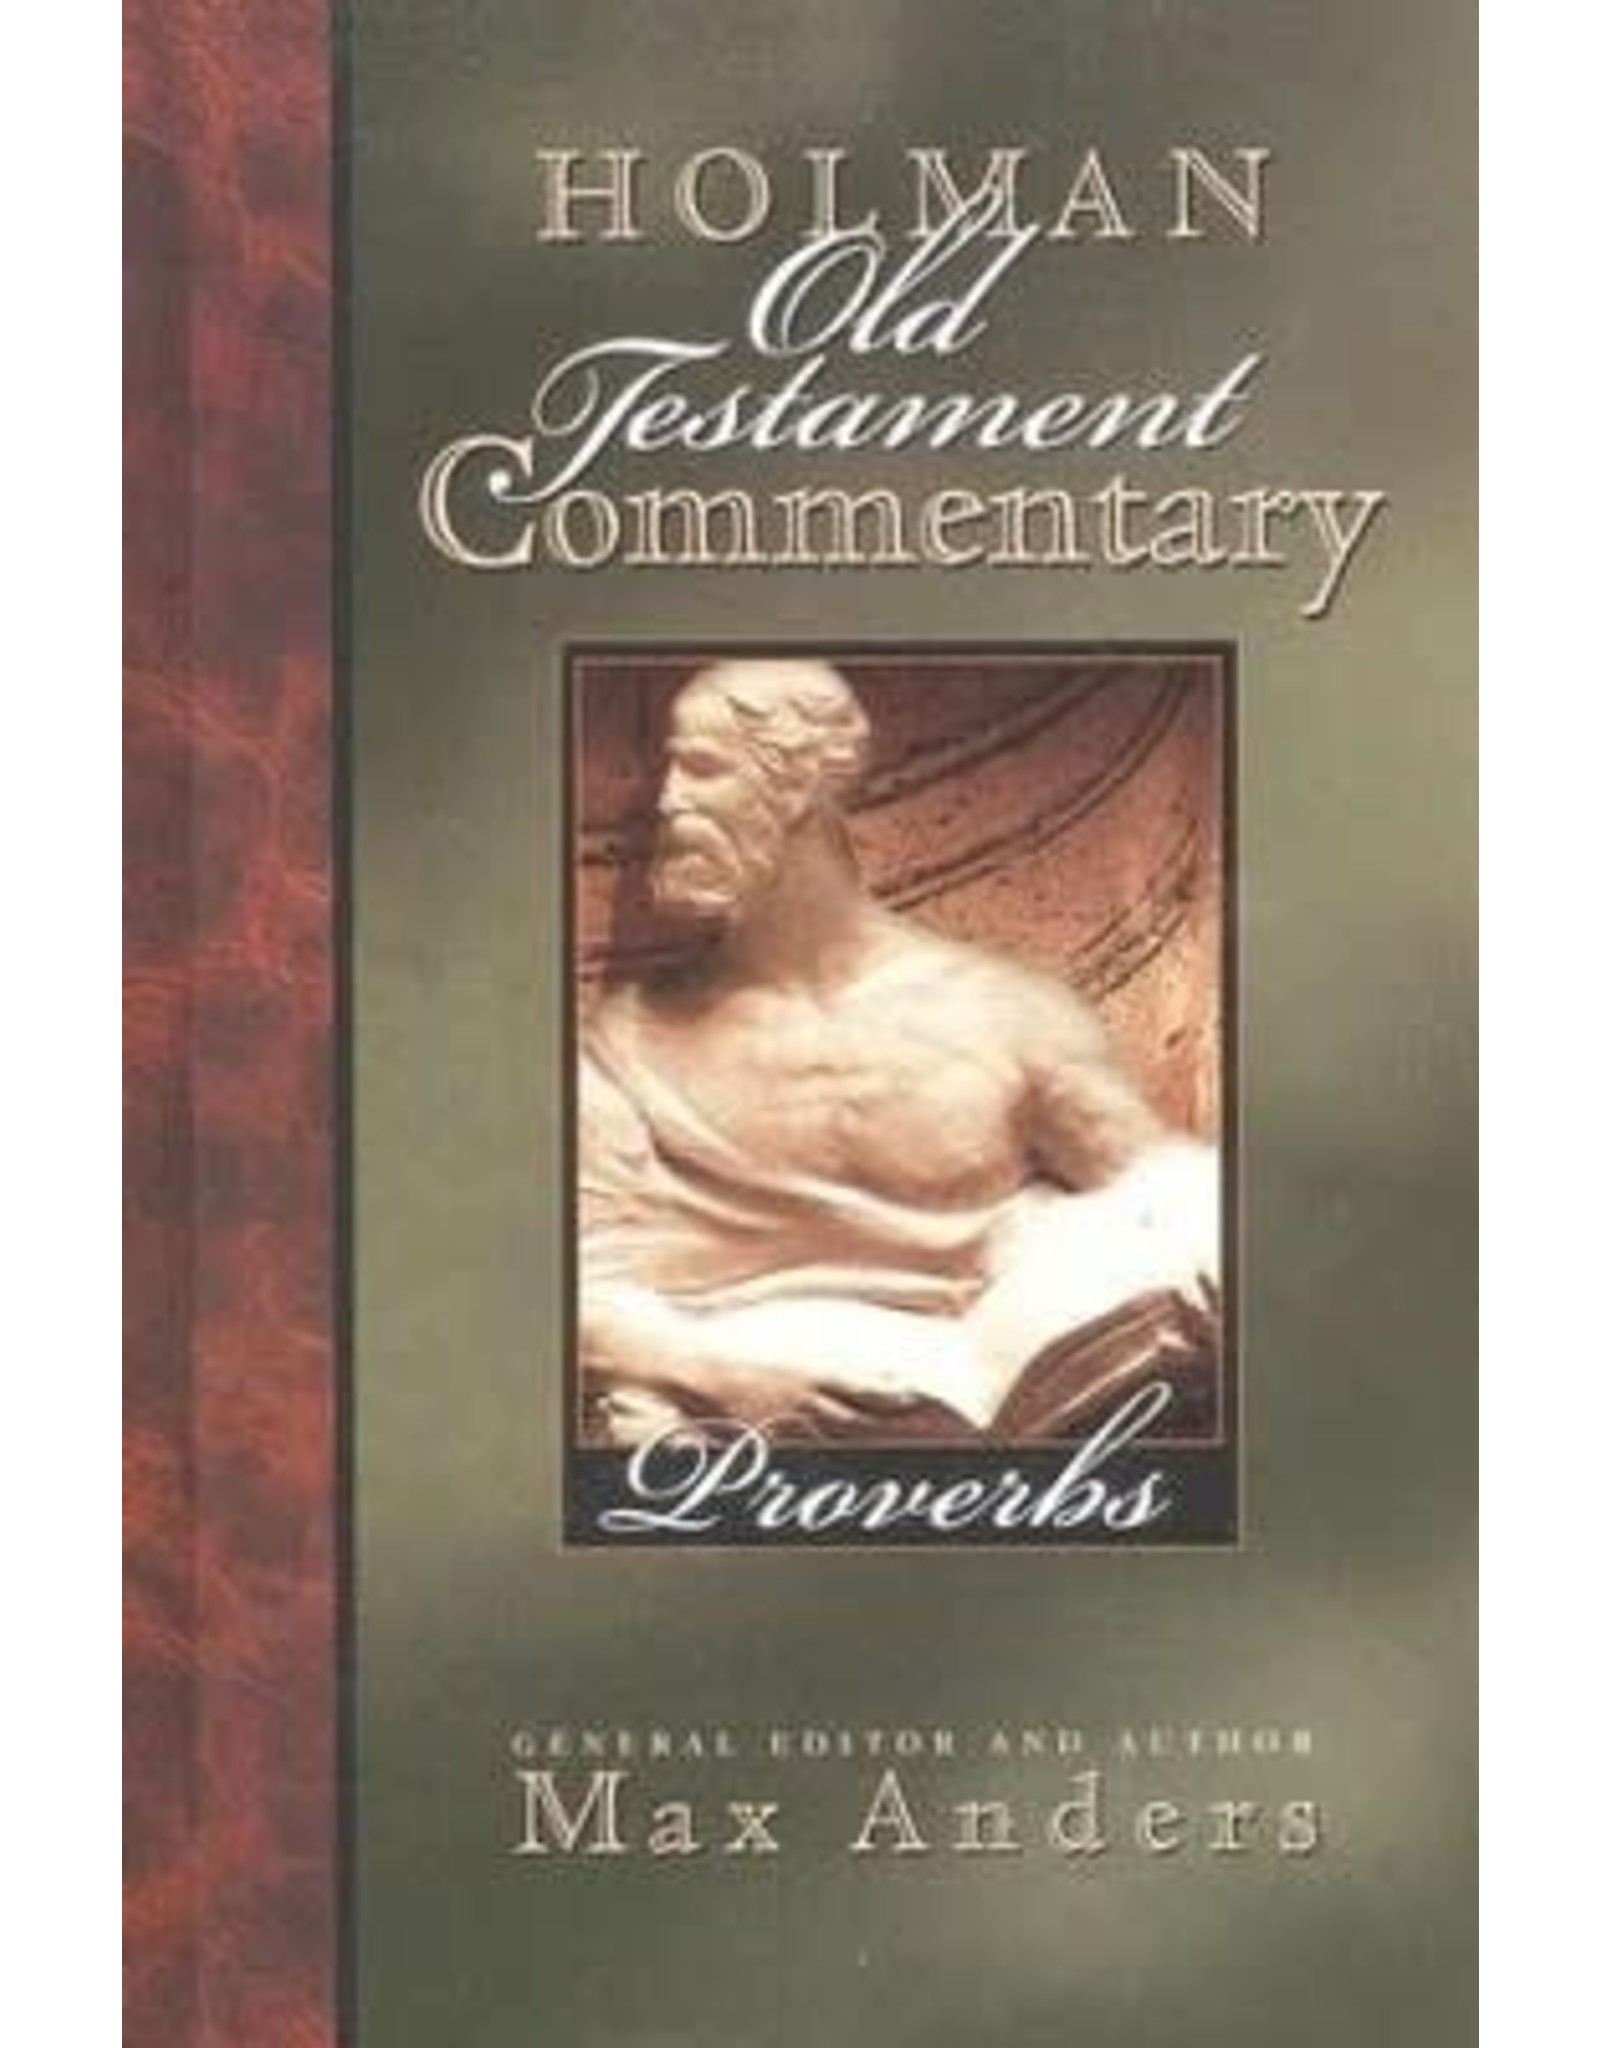 Anders Holman Commentary - Proverbs